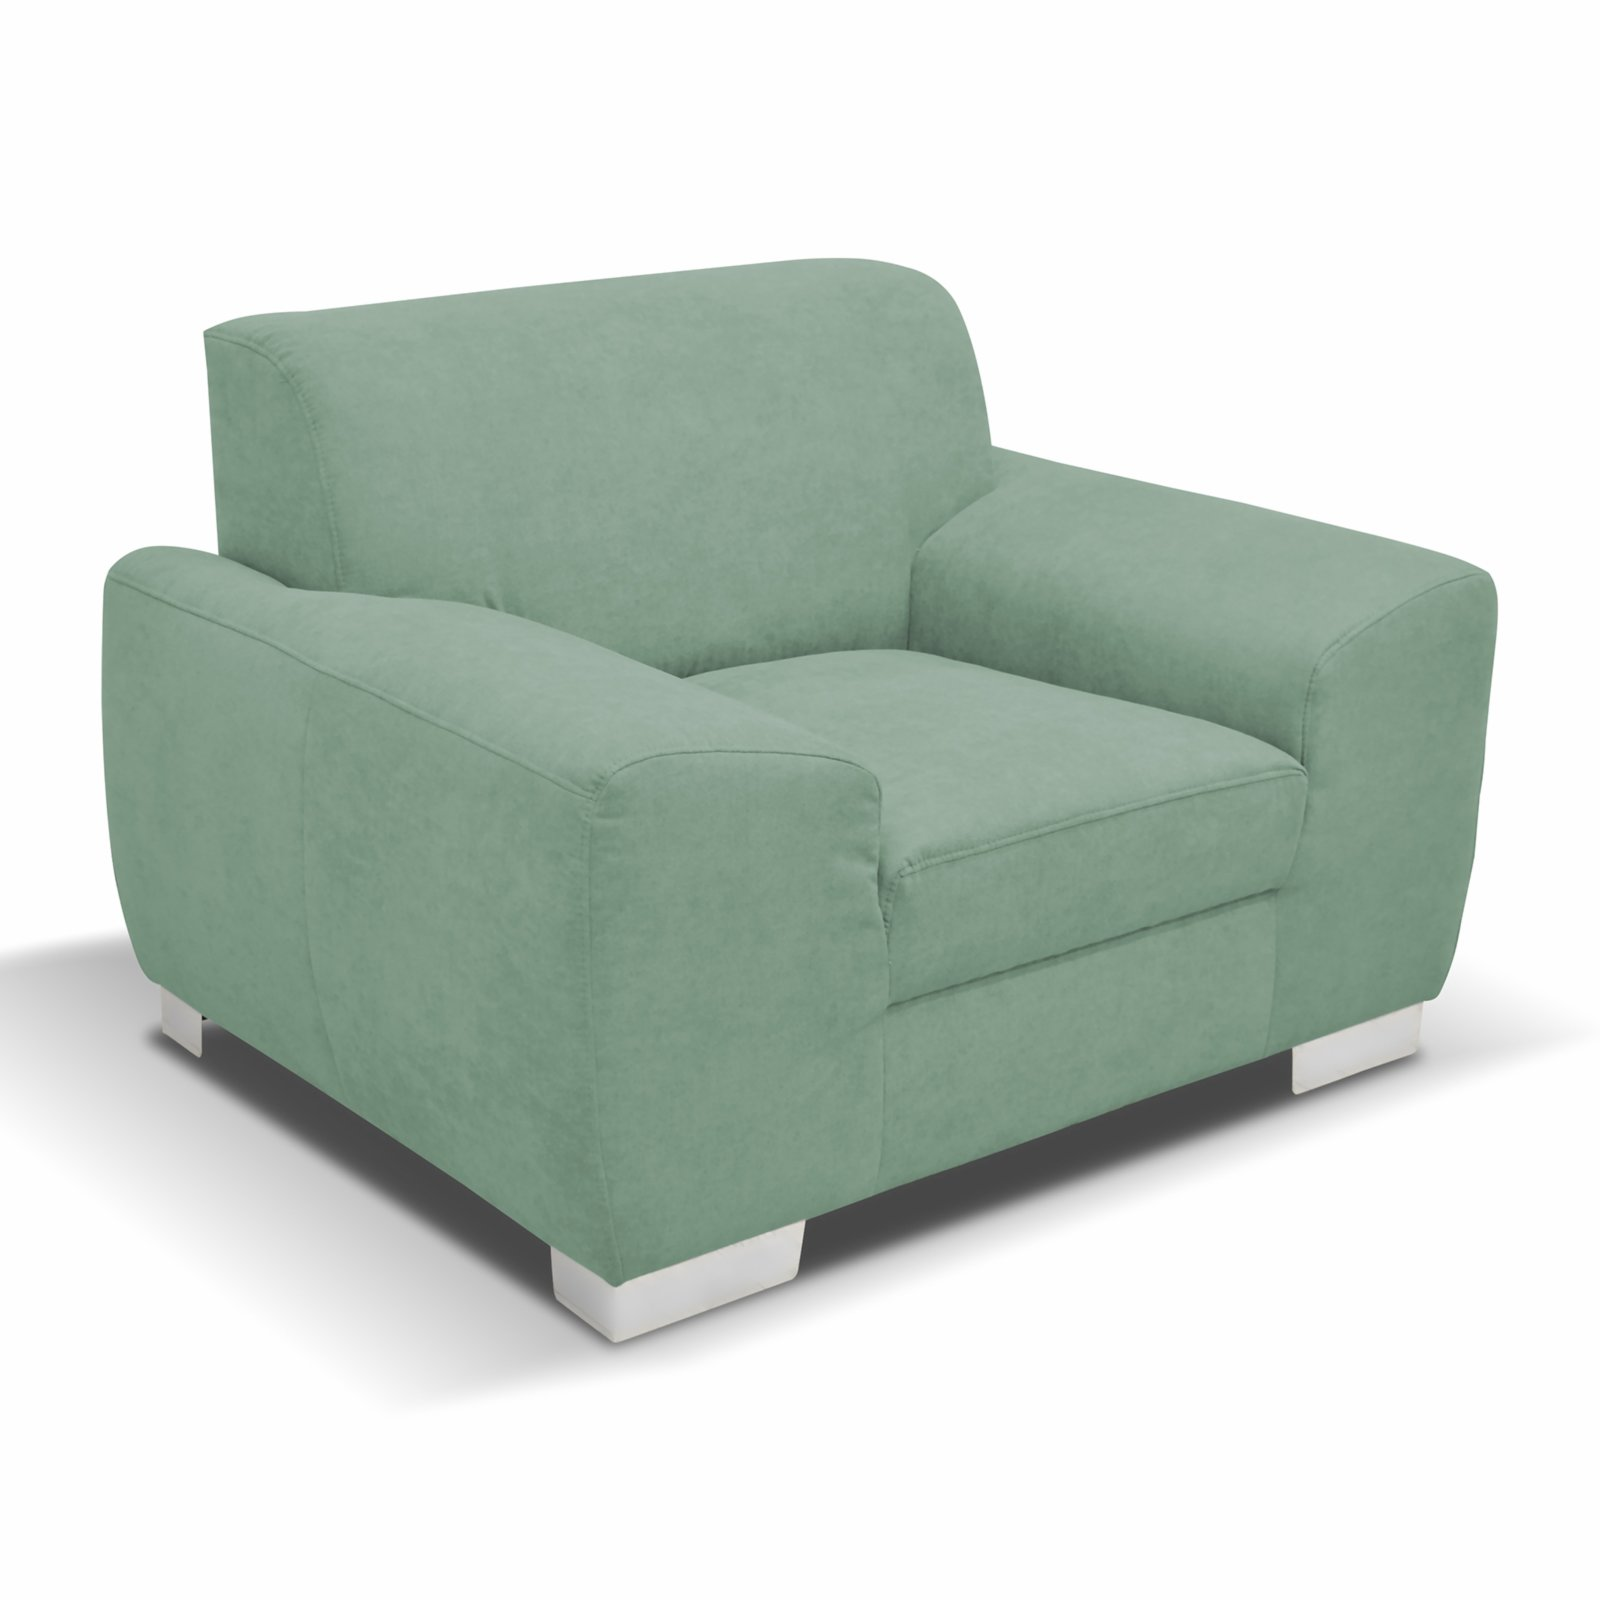 Sessel Mint Sessel Mint 1 Sitzer Fernseh And Relaxsessel Sessel